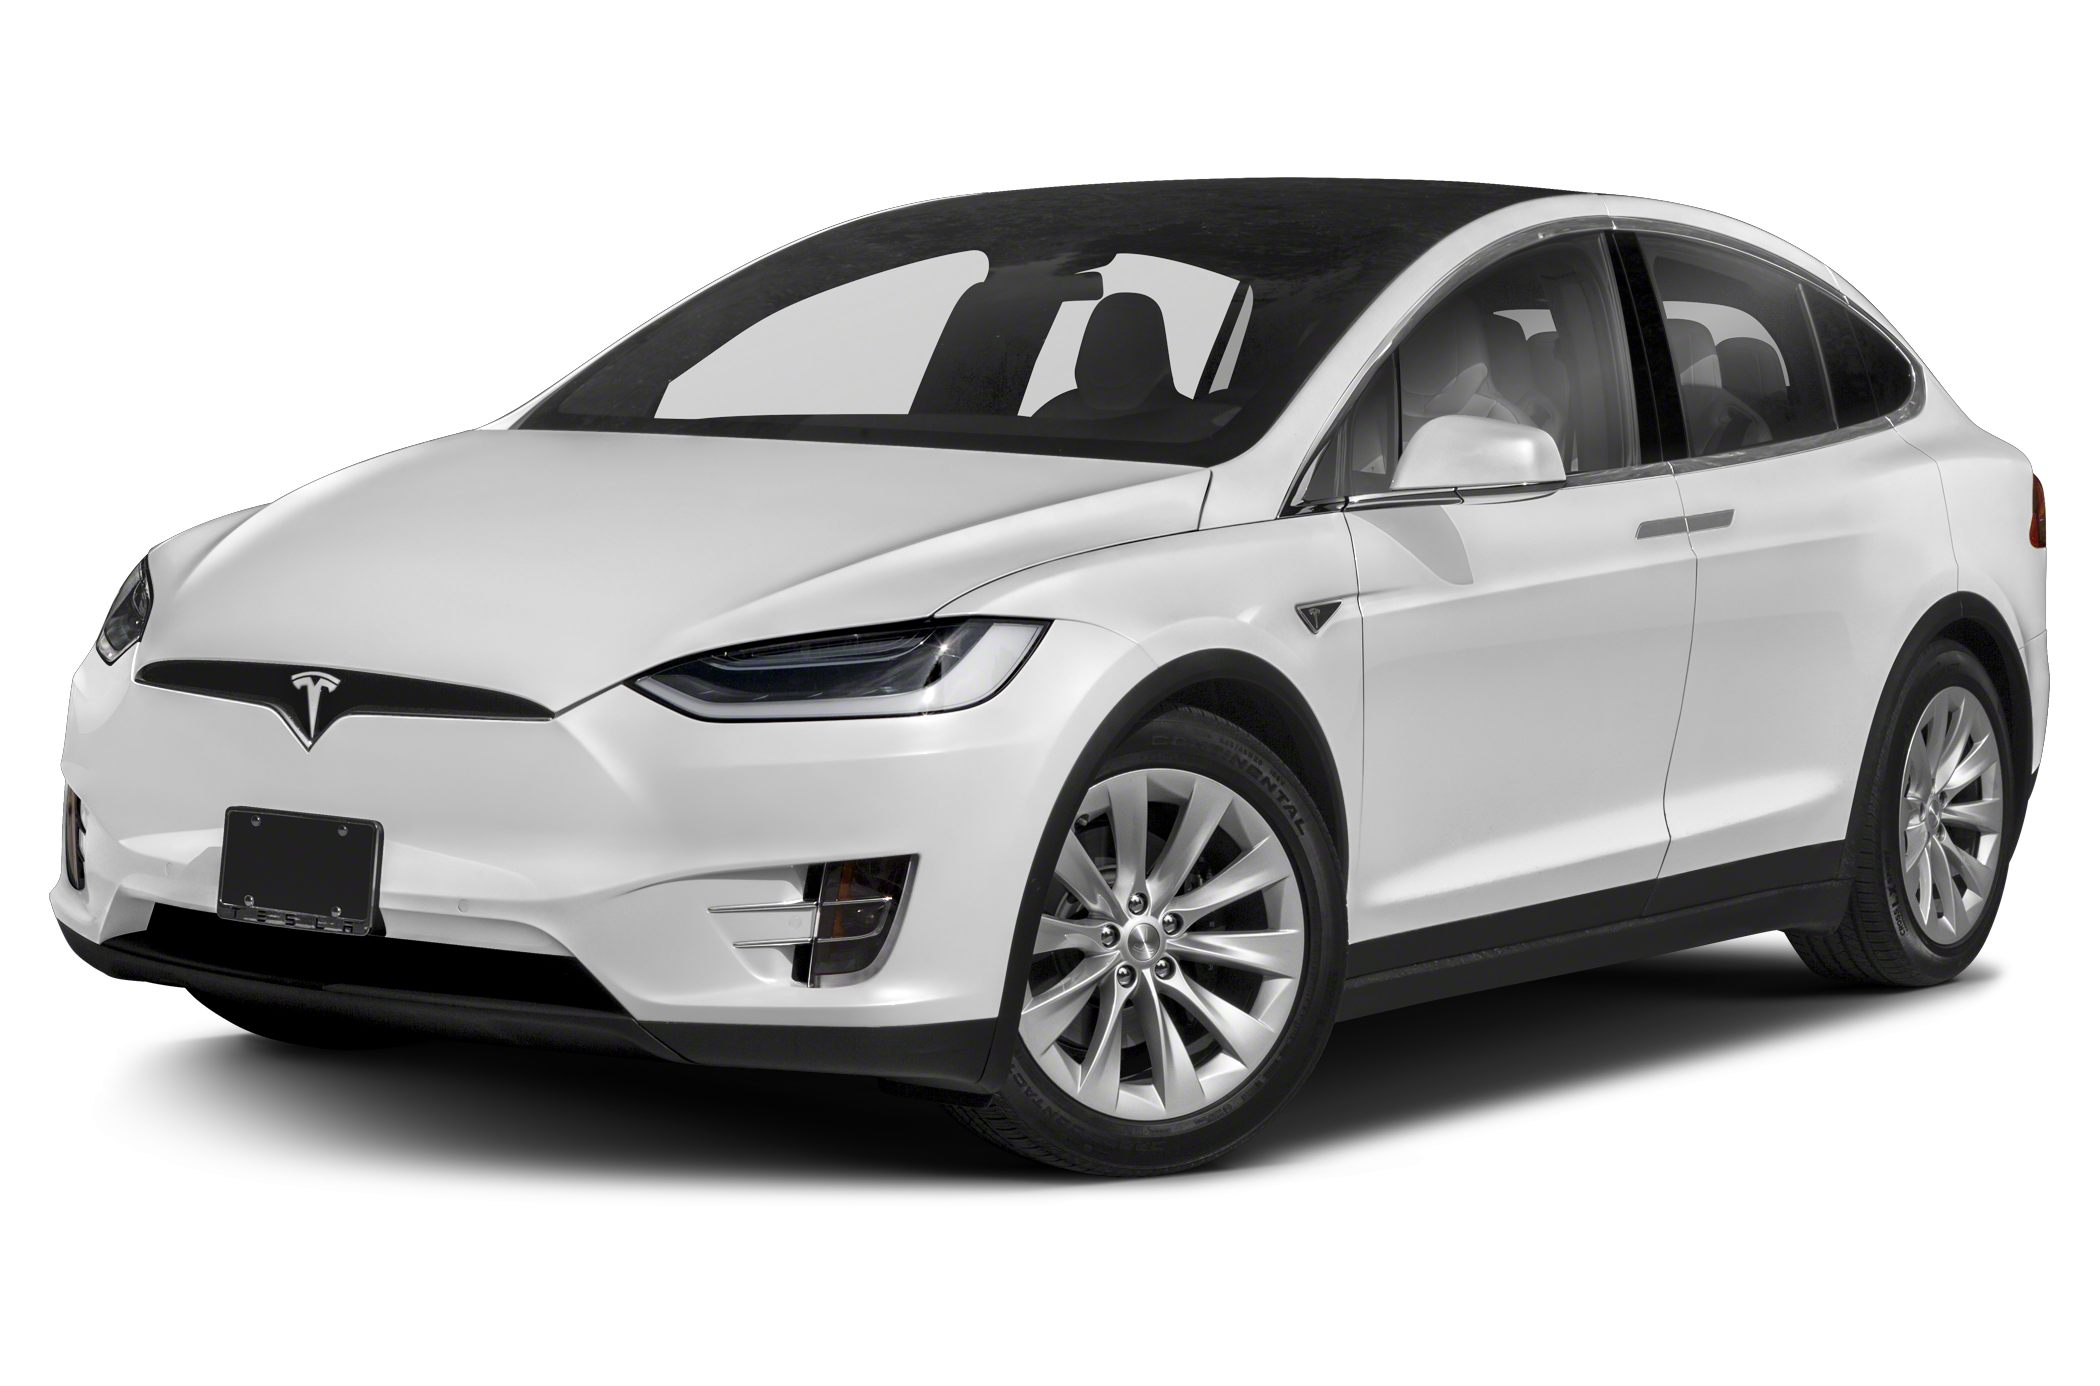 tesla model x news photos and buying information autoblog. Black Bedroom Furniture Sets. Home Design Ideas